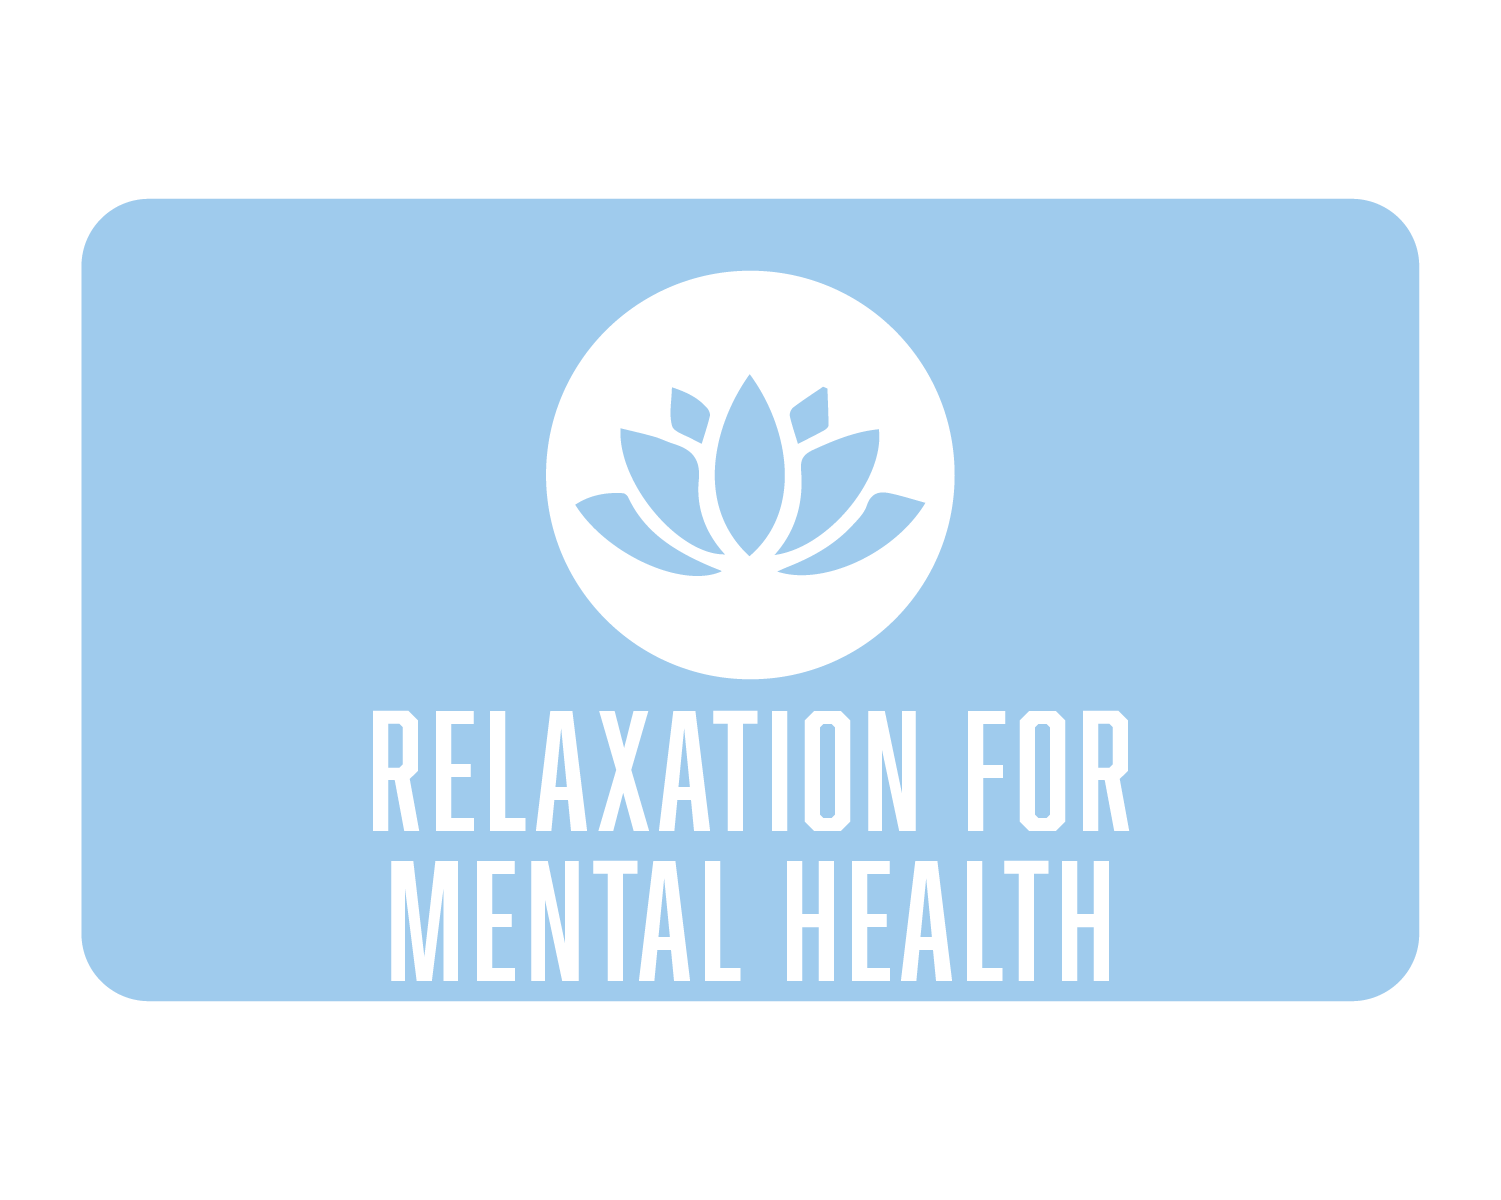 Relaxation for mental health icon